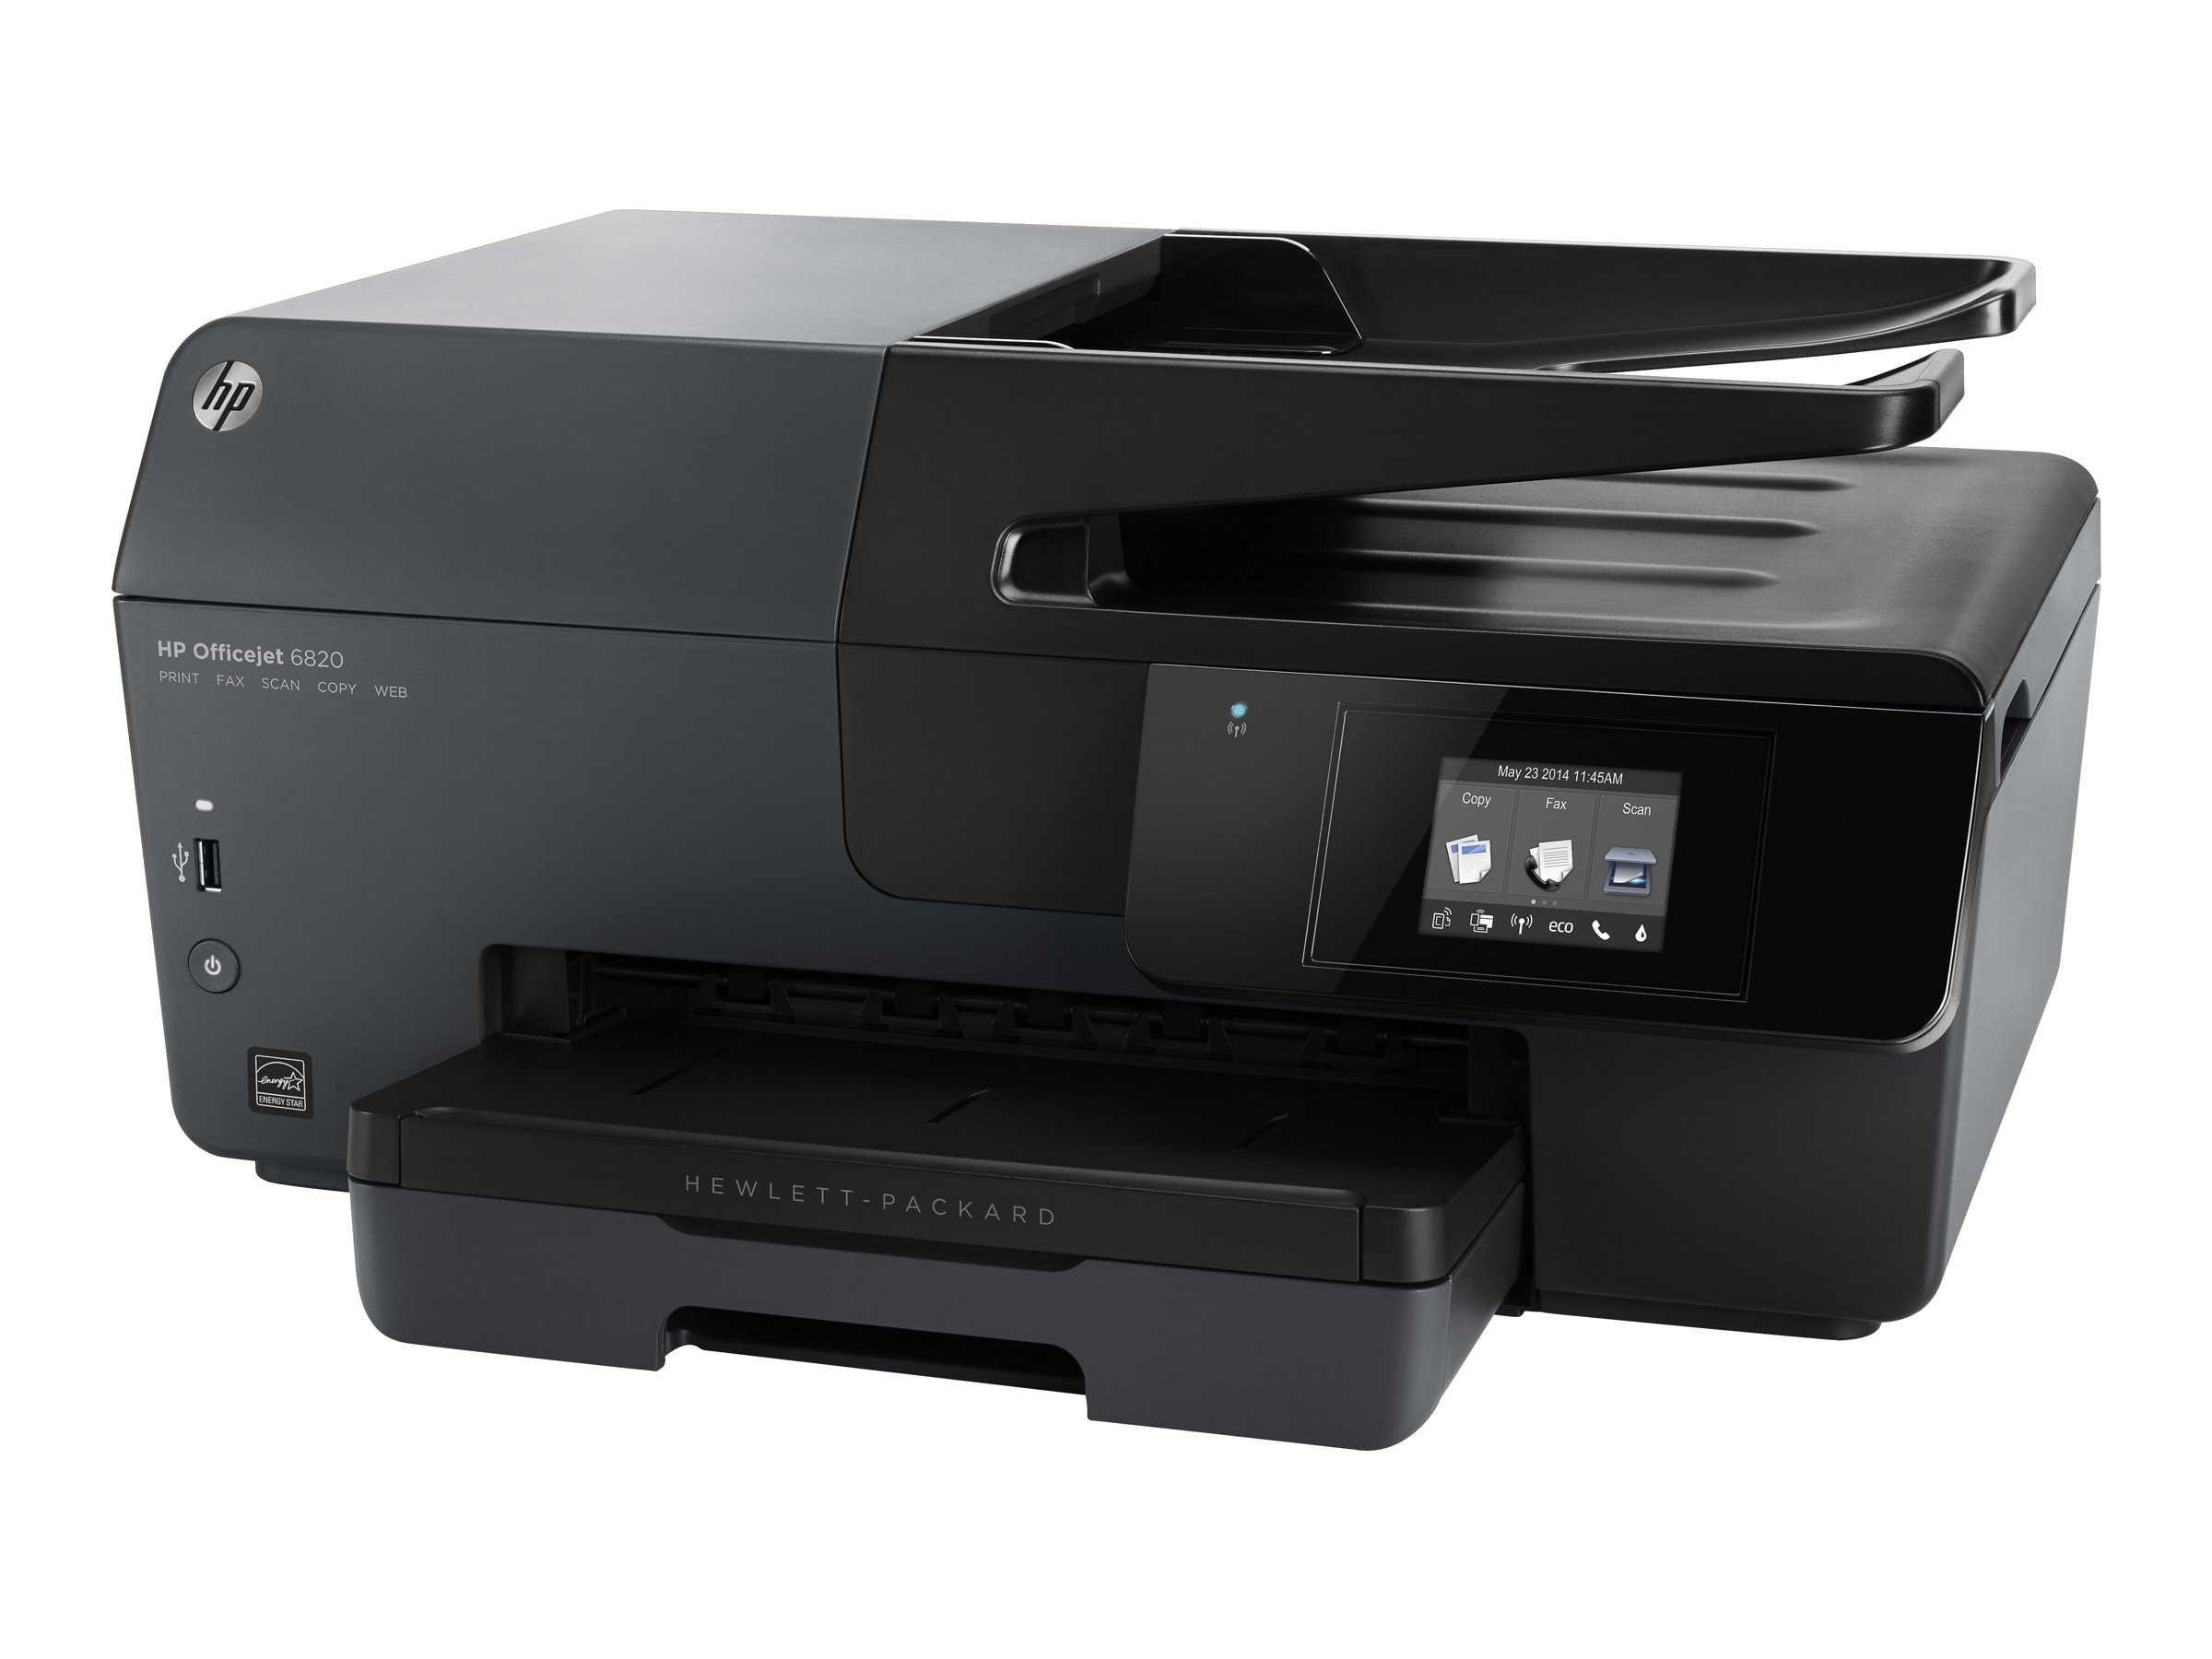 HP Officejet 6820 e-All-in-One - Multifunktionsdrucker - Farbe - Tintenstrahl - Legal (216 x 356 mm) (Original) - A4/Legal (Medien)